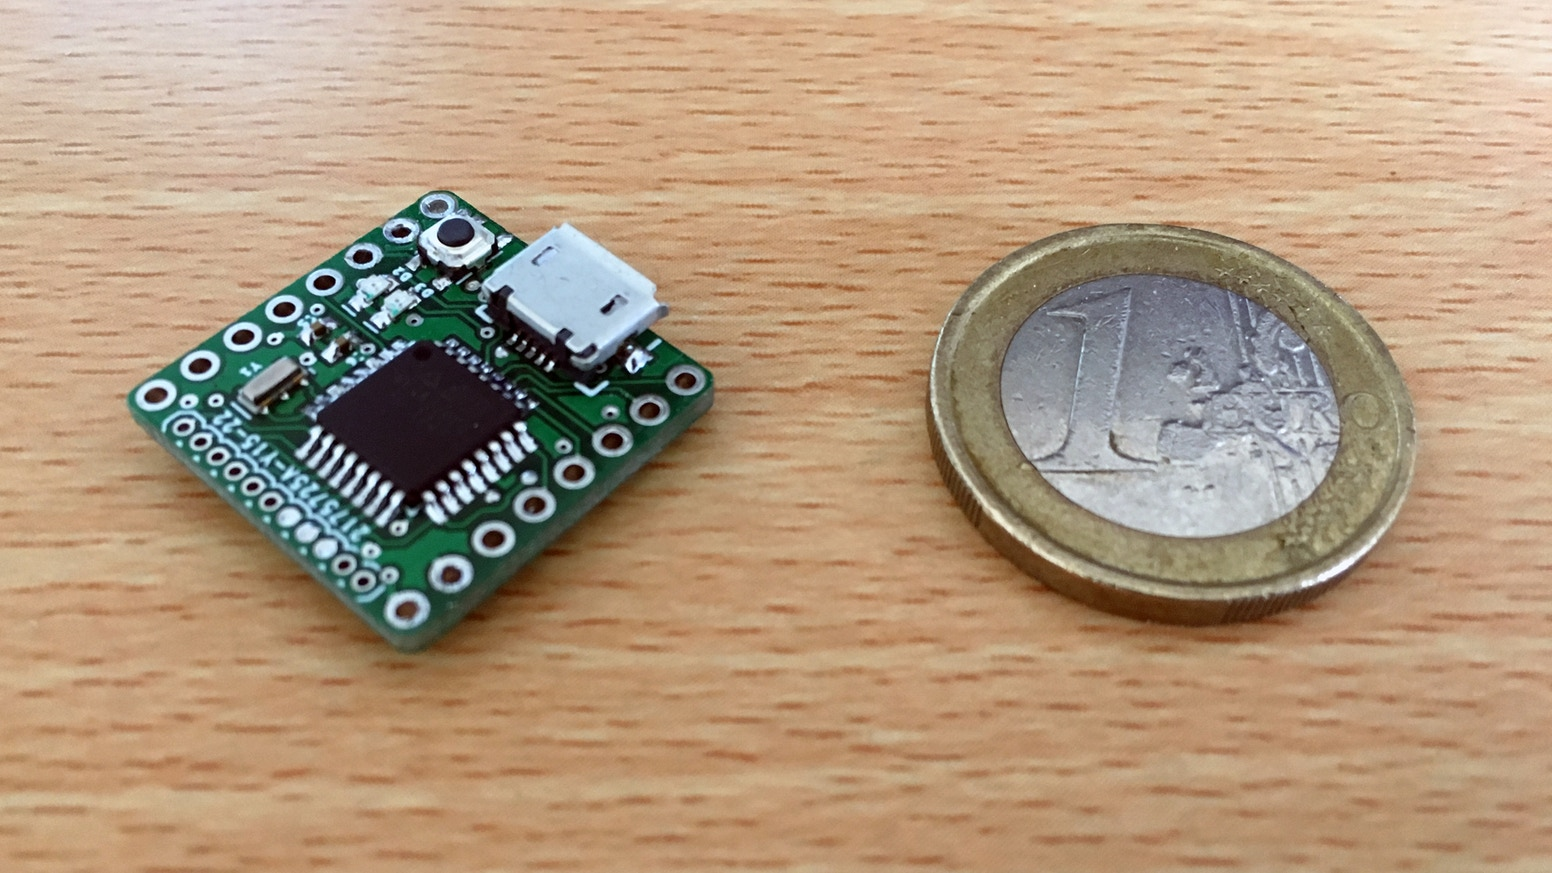 Pico The Worlds Smallest Arduino 328pb Core By Bitsnblobs Dc 12v To 5v Converter Circuit Uno Breadboard More Features And Performance Than An In A Tiny Quarter Sized Board Thats Compatible